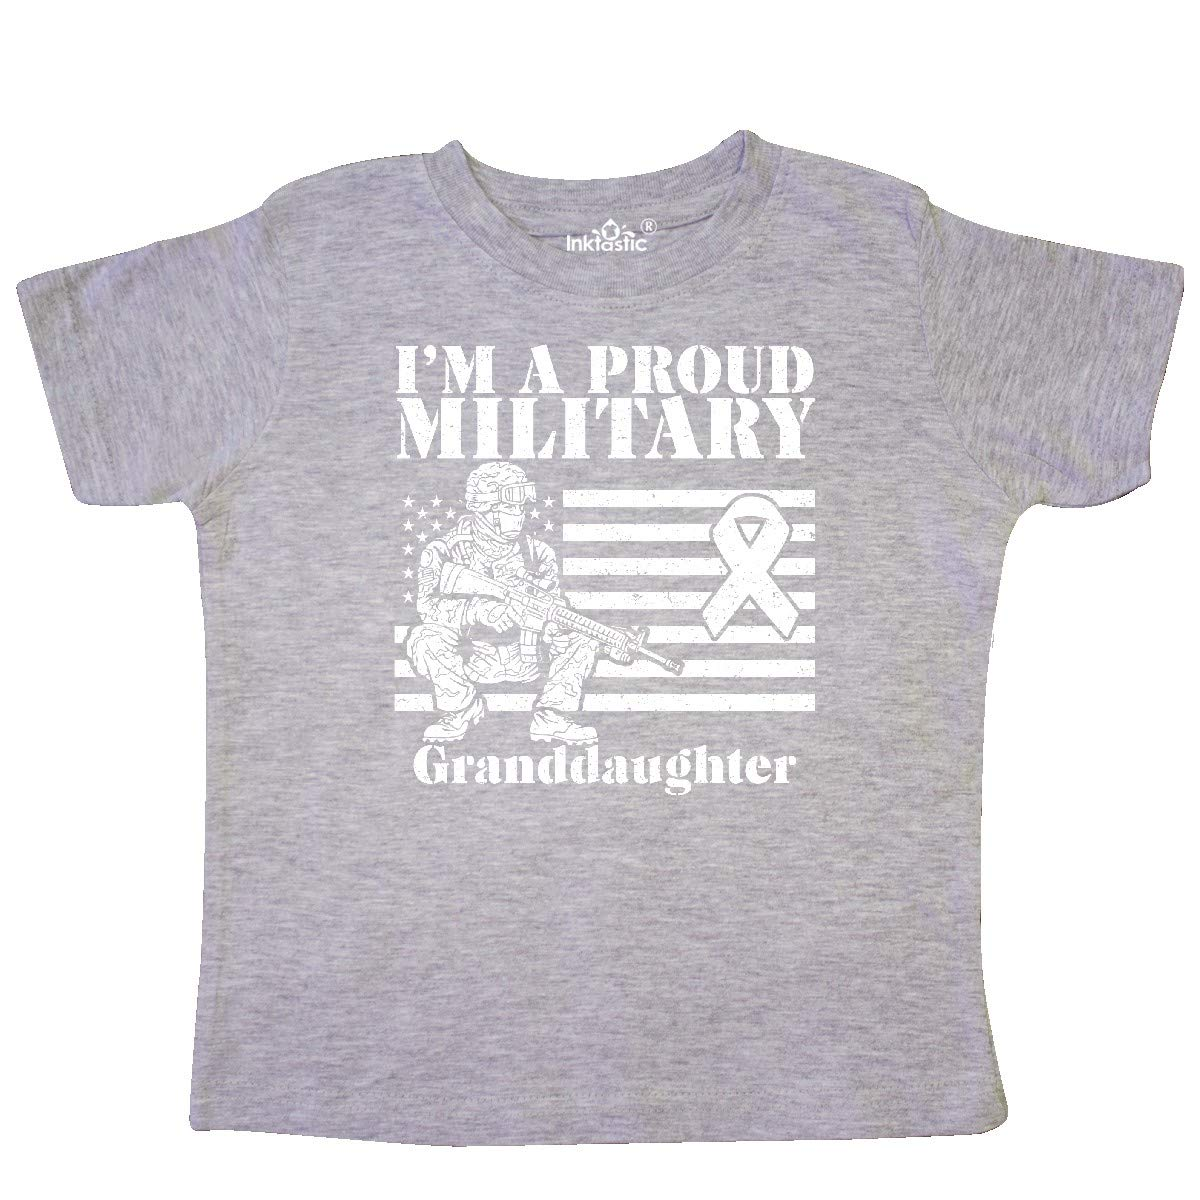 inktastic Proud Military Granddaughter Red Friday Toddler T-Shirt